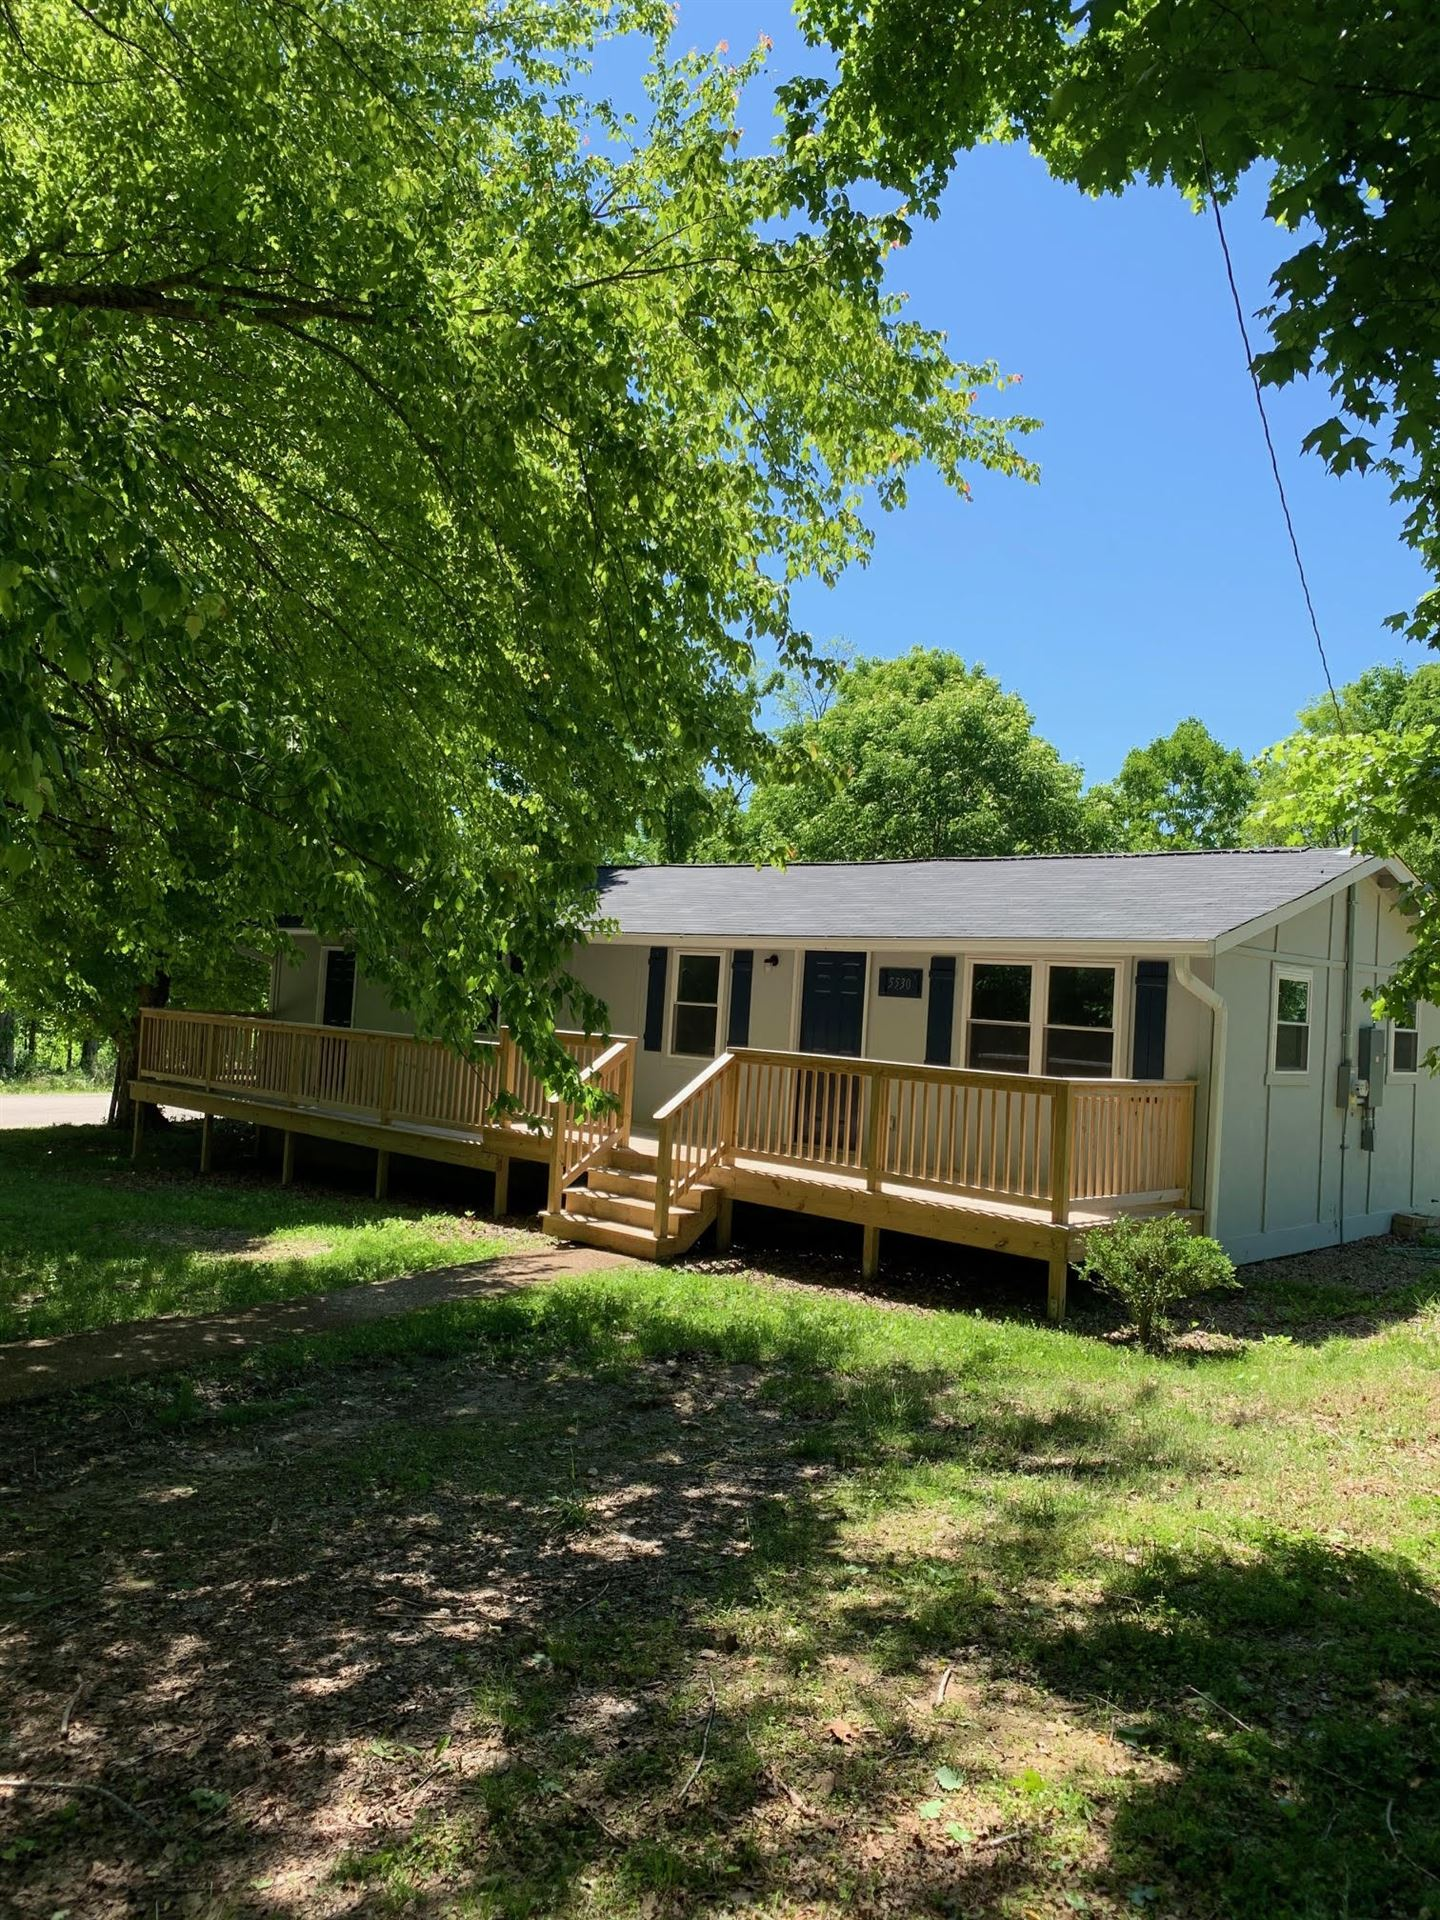 Photo of 5530 Hargrove Ridge Rd, Franklin, TN 37064 (MLS # 2253085)